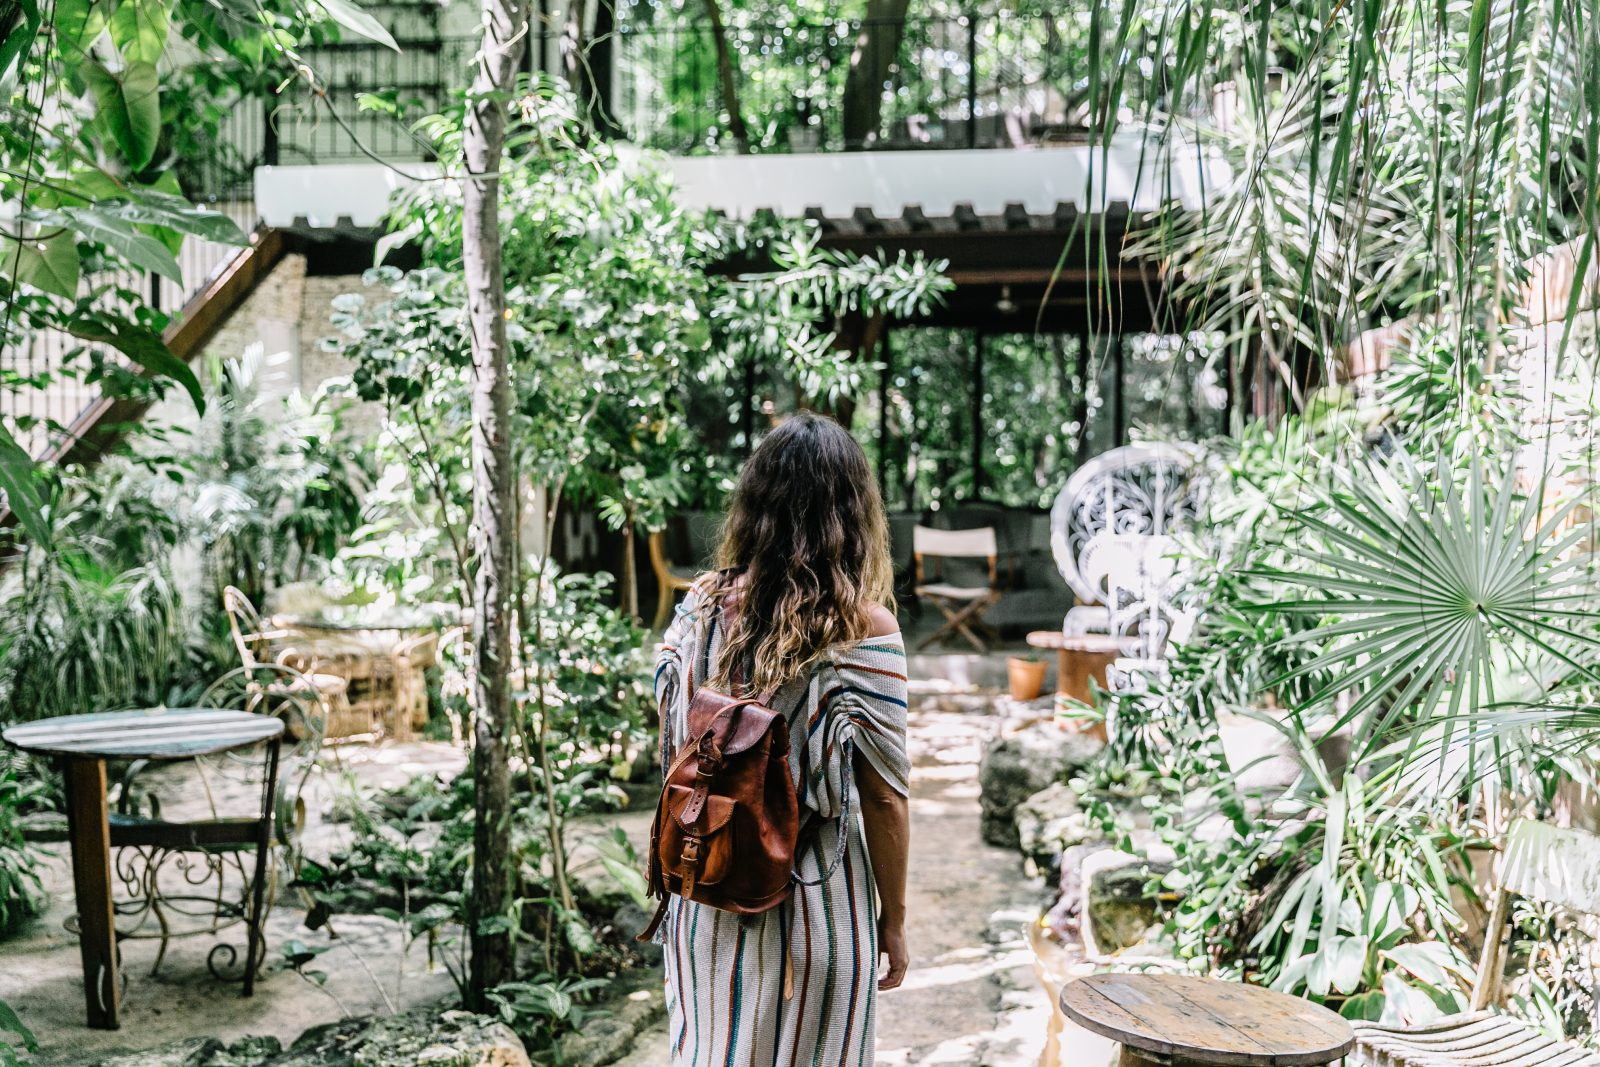 stripped_dress-leather_backpack-suede_espadrilles-mayan_ruins-hotel_esencia-sanara_tulum-beach-mexico-outfit-collage_vintage-2